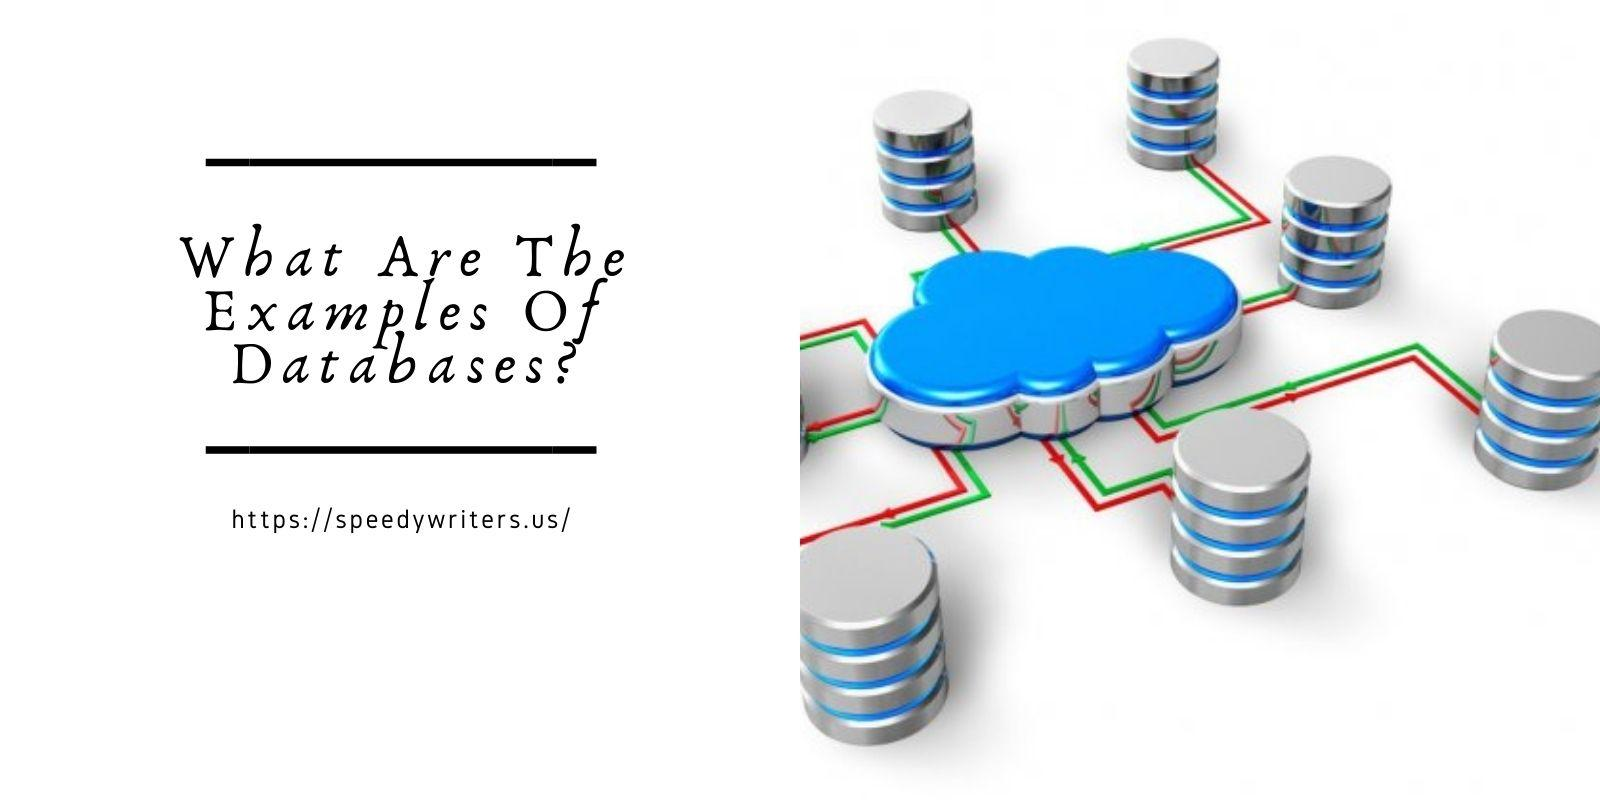 What Are The Examples Of Databases?